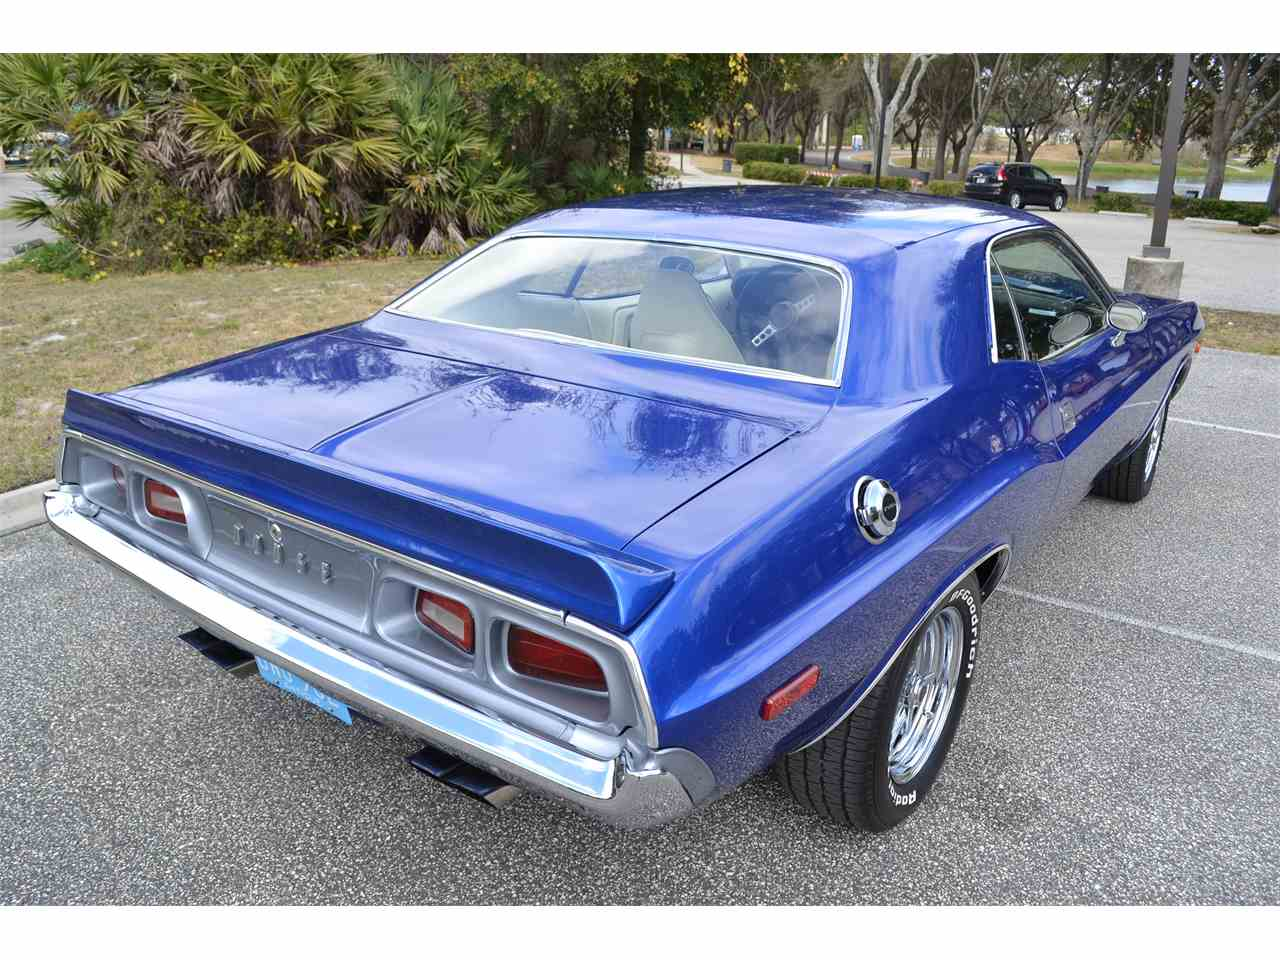 Used Cars For Sale Melbourne Under $5000 >> 1973 Dodge Challenger for Sale | ClassicCars.com | CC-978677